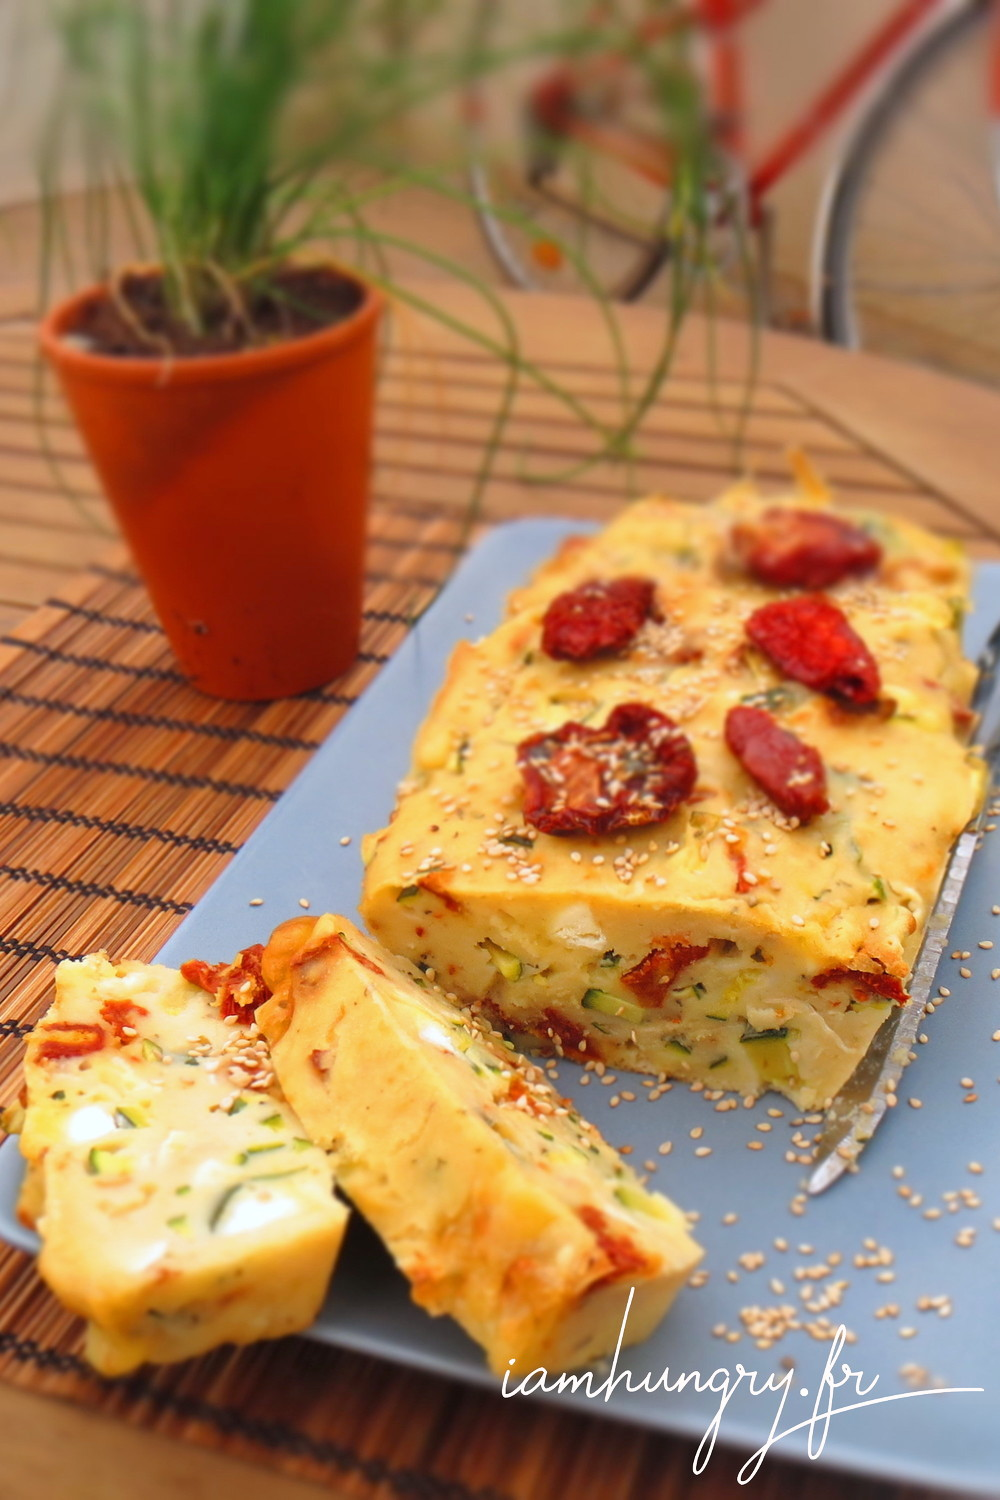 Cake Courgettes Tomates S Ef Bf Bdch Ef Bf Bdes Picard